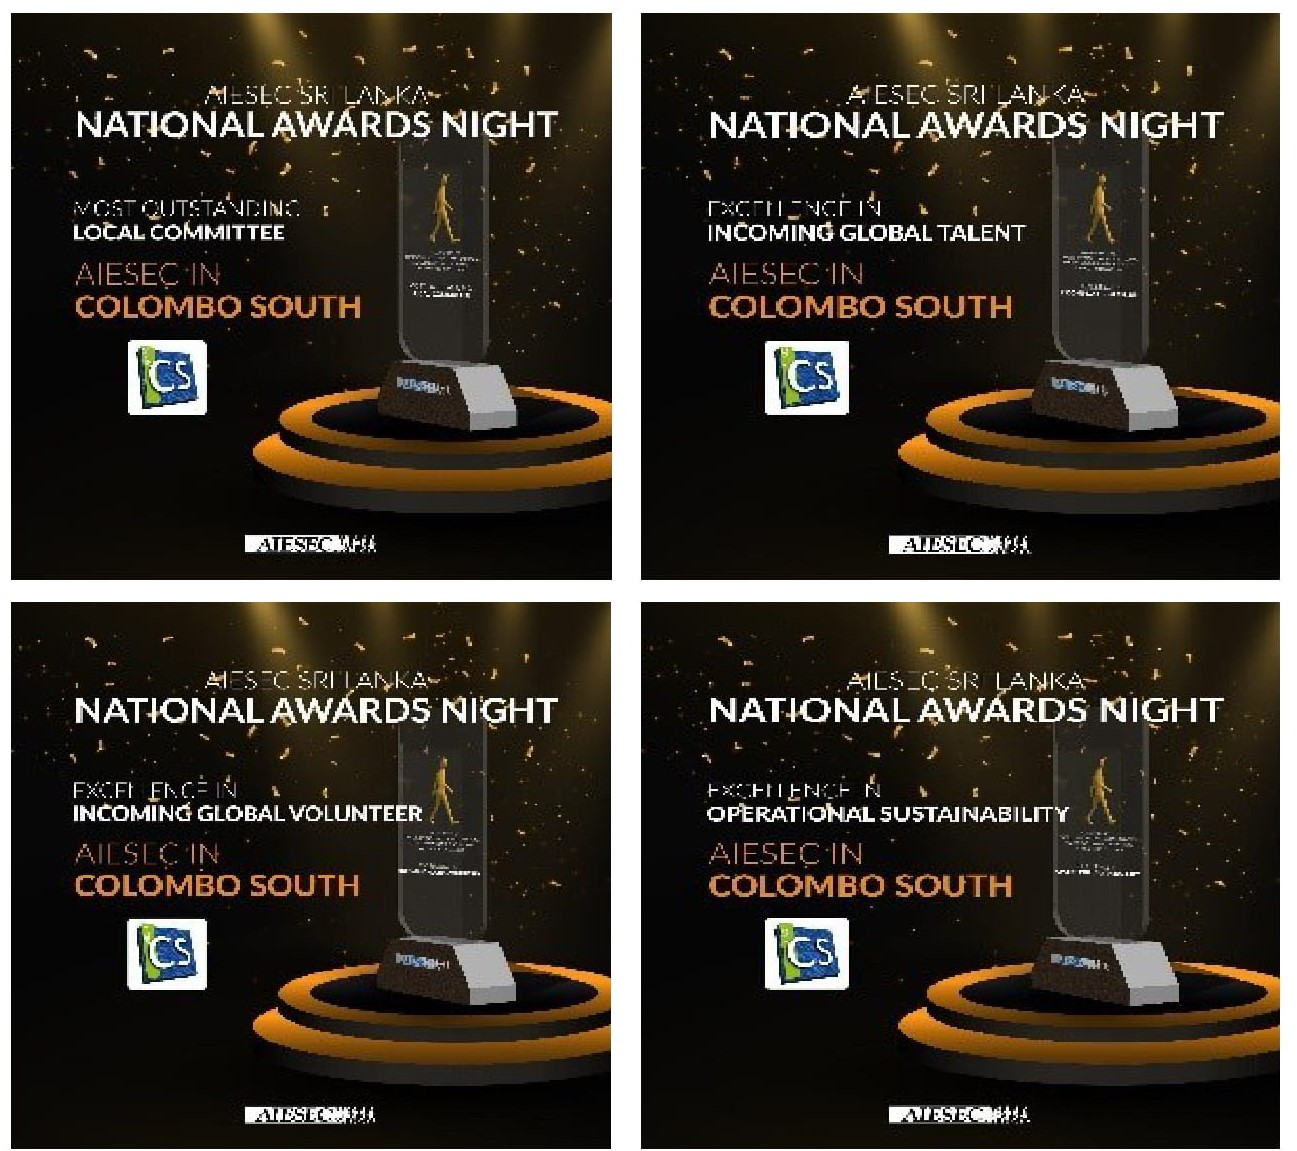 AIESEC in University of Moratuwa wins 4 Awards at the at the 2020 National Awards Night of AIESEC in Sri Lanka